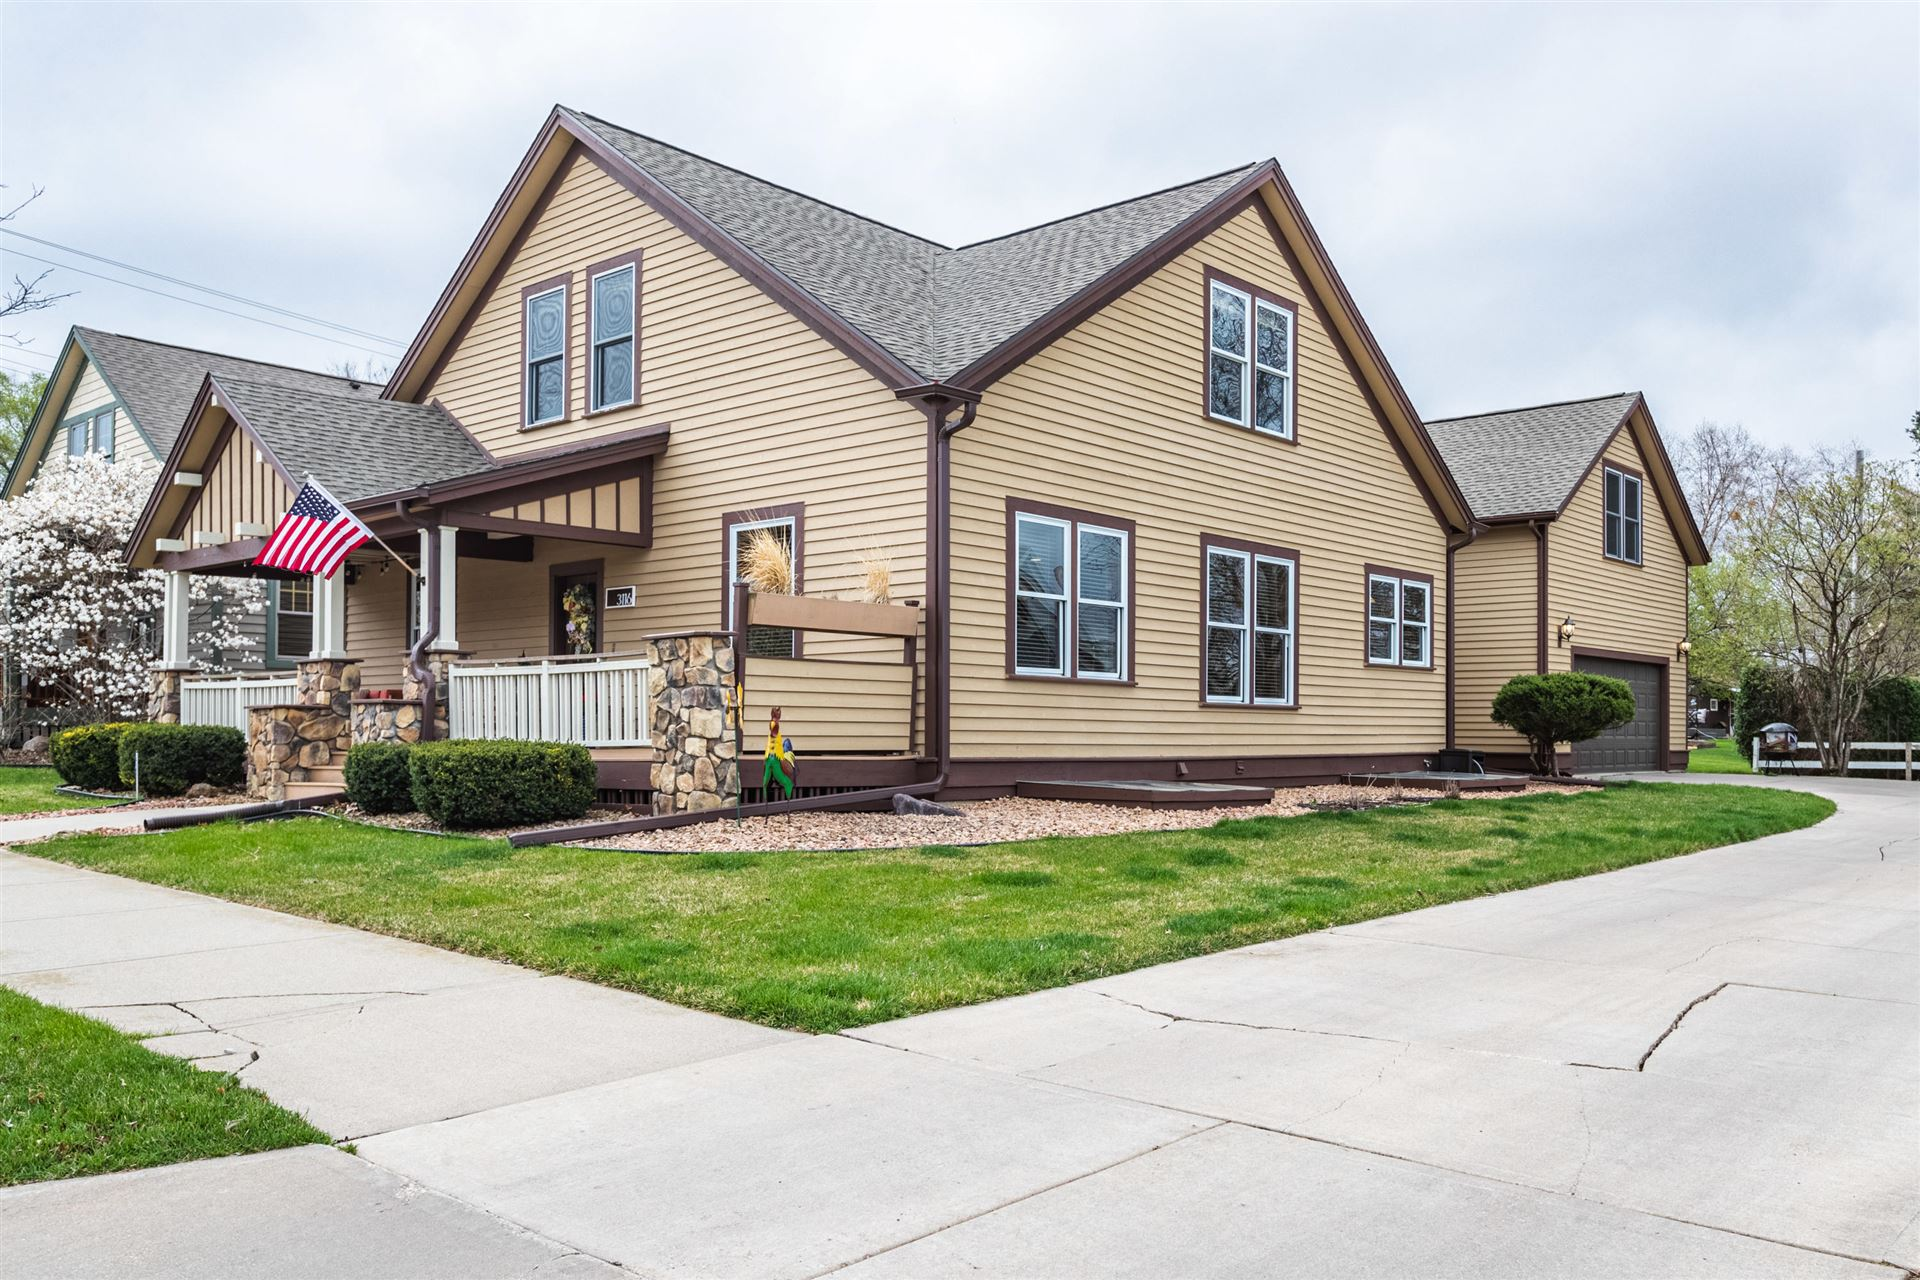 3116 Macharley Ln, La Crosse, WI 54601 - MLS#: 1735506